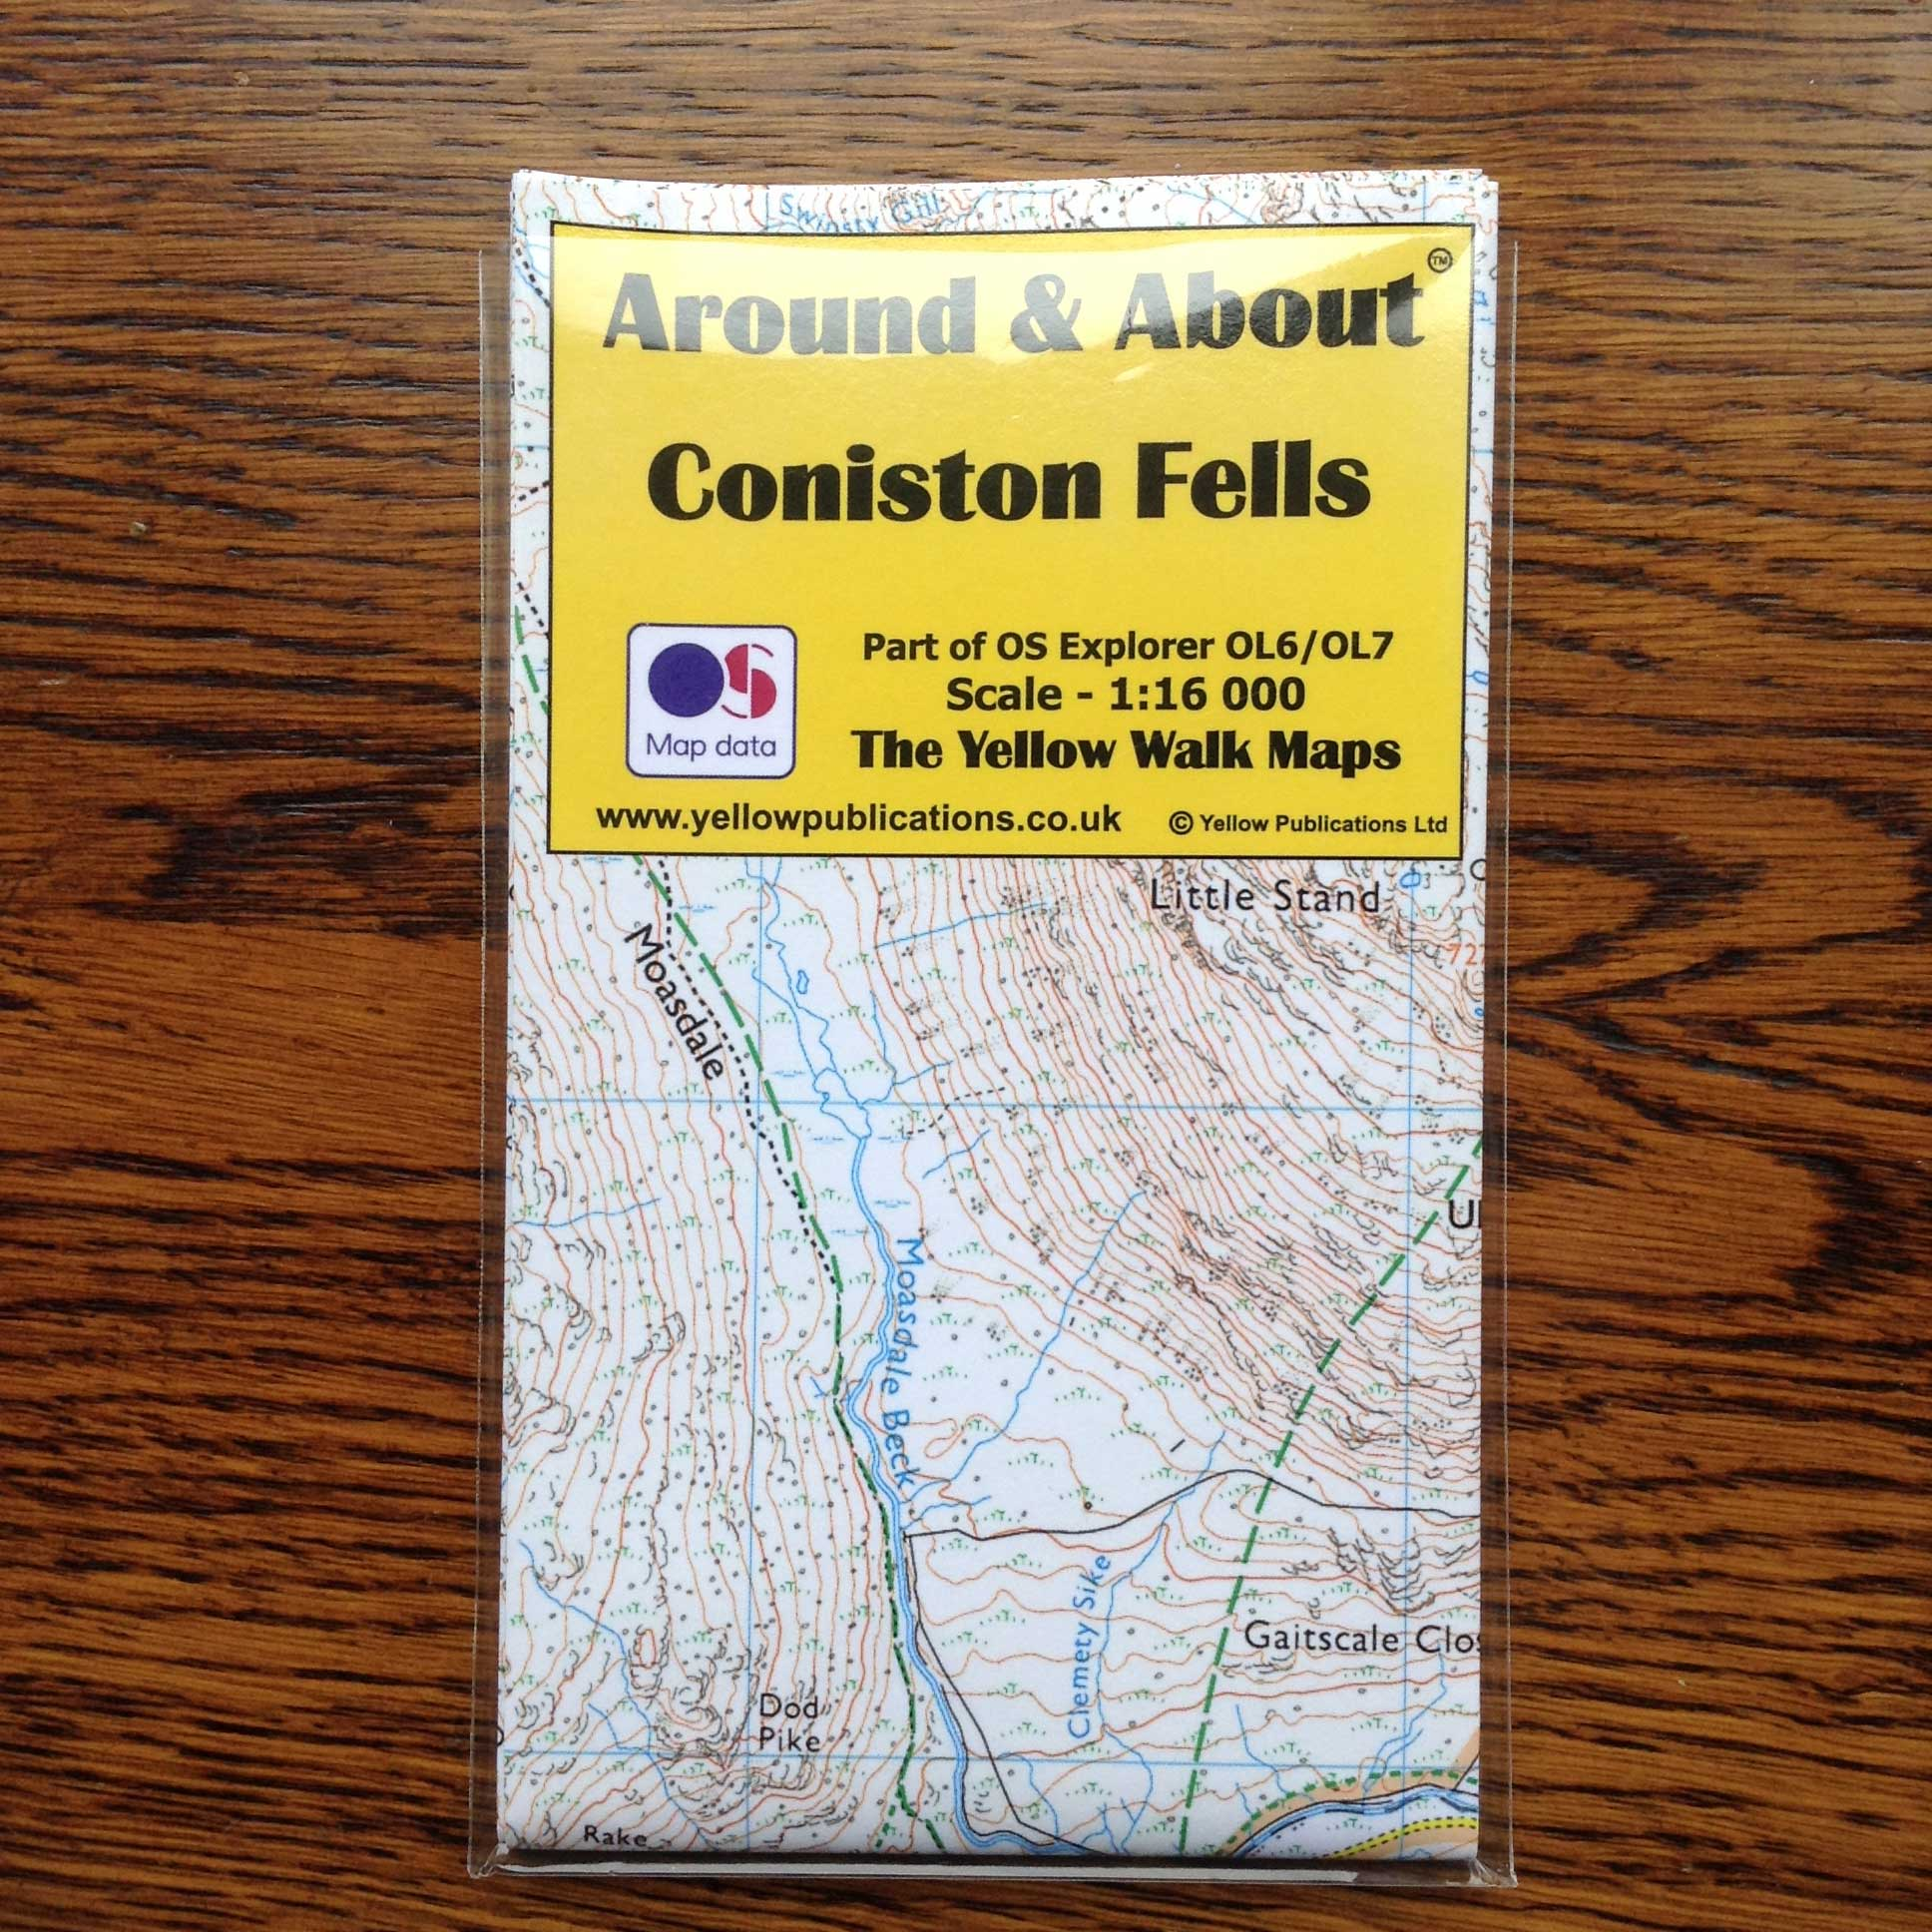 Around & About Coniston Fells Map